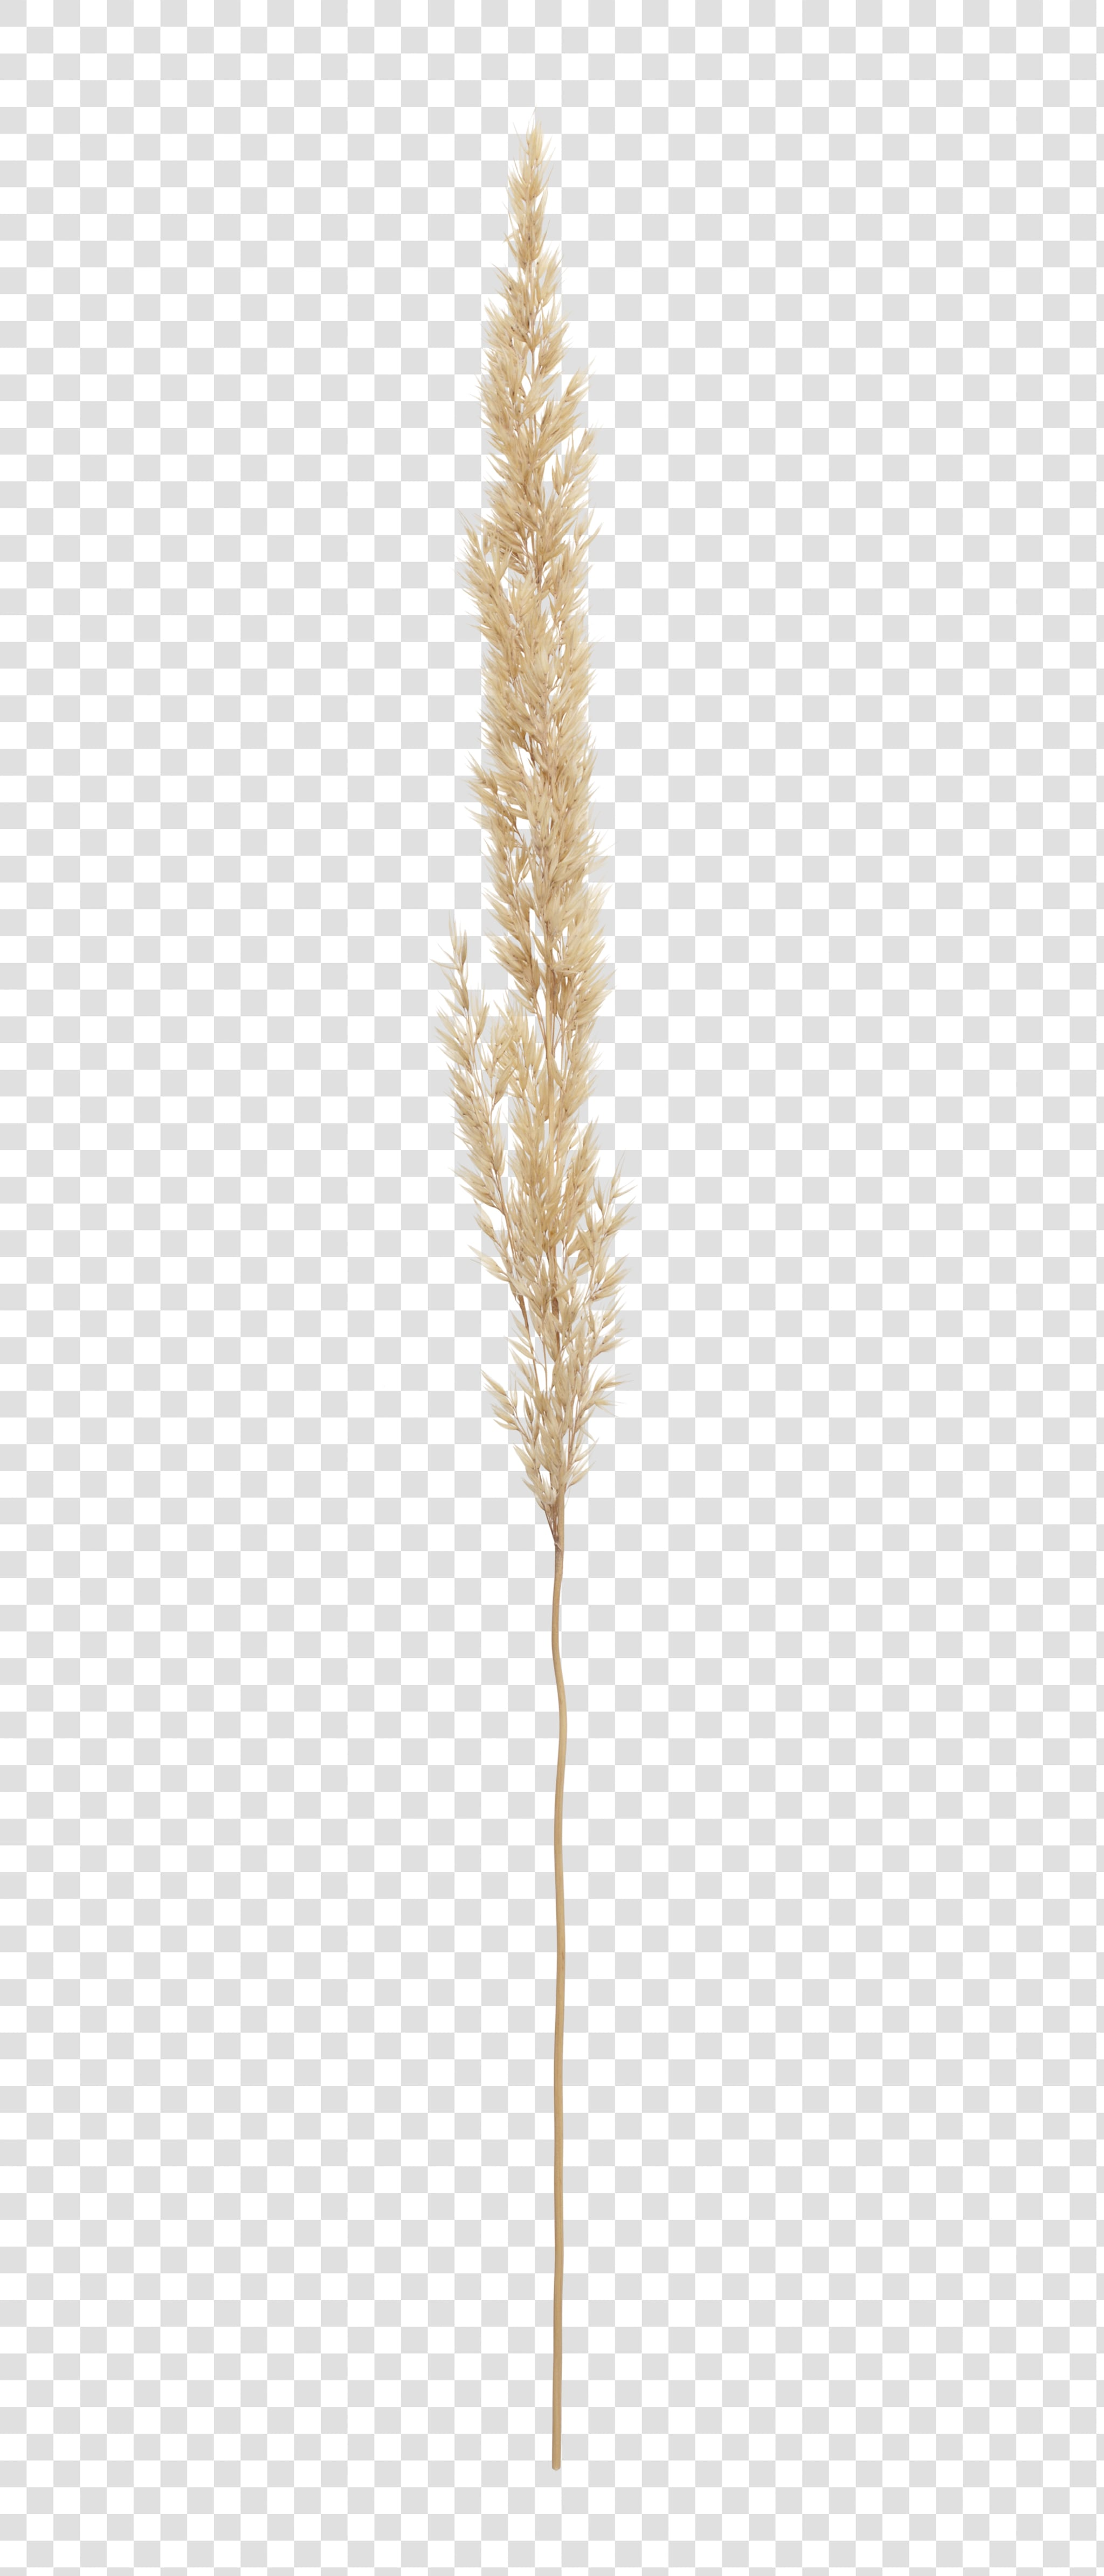 Spikelet PSD isolated image